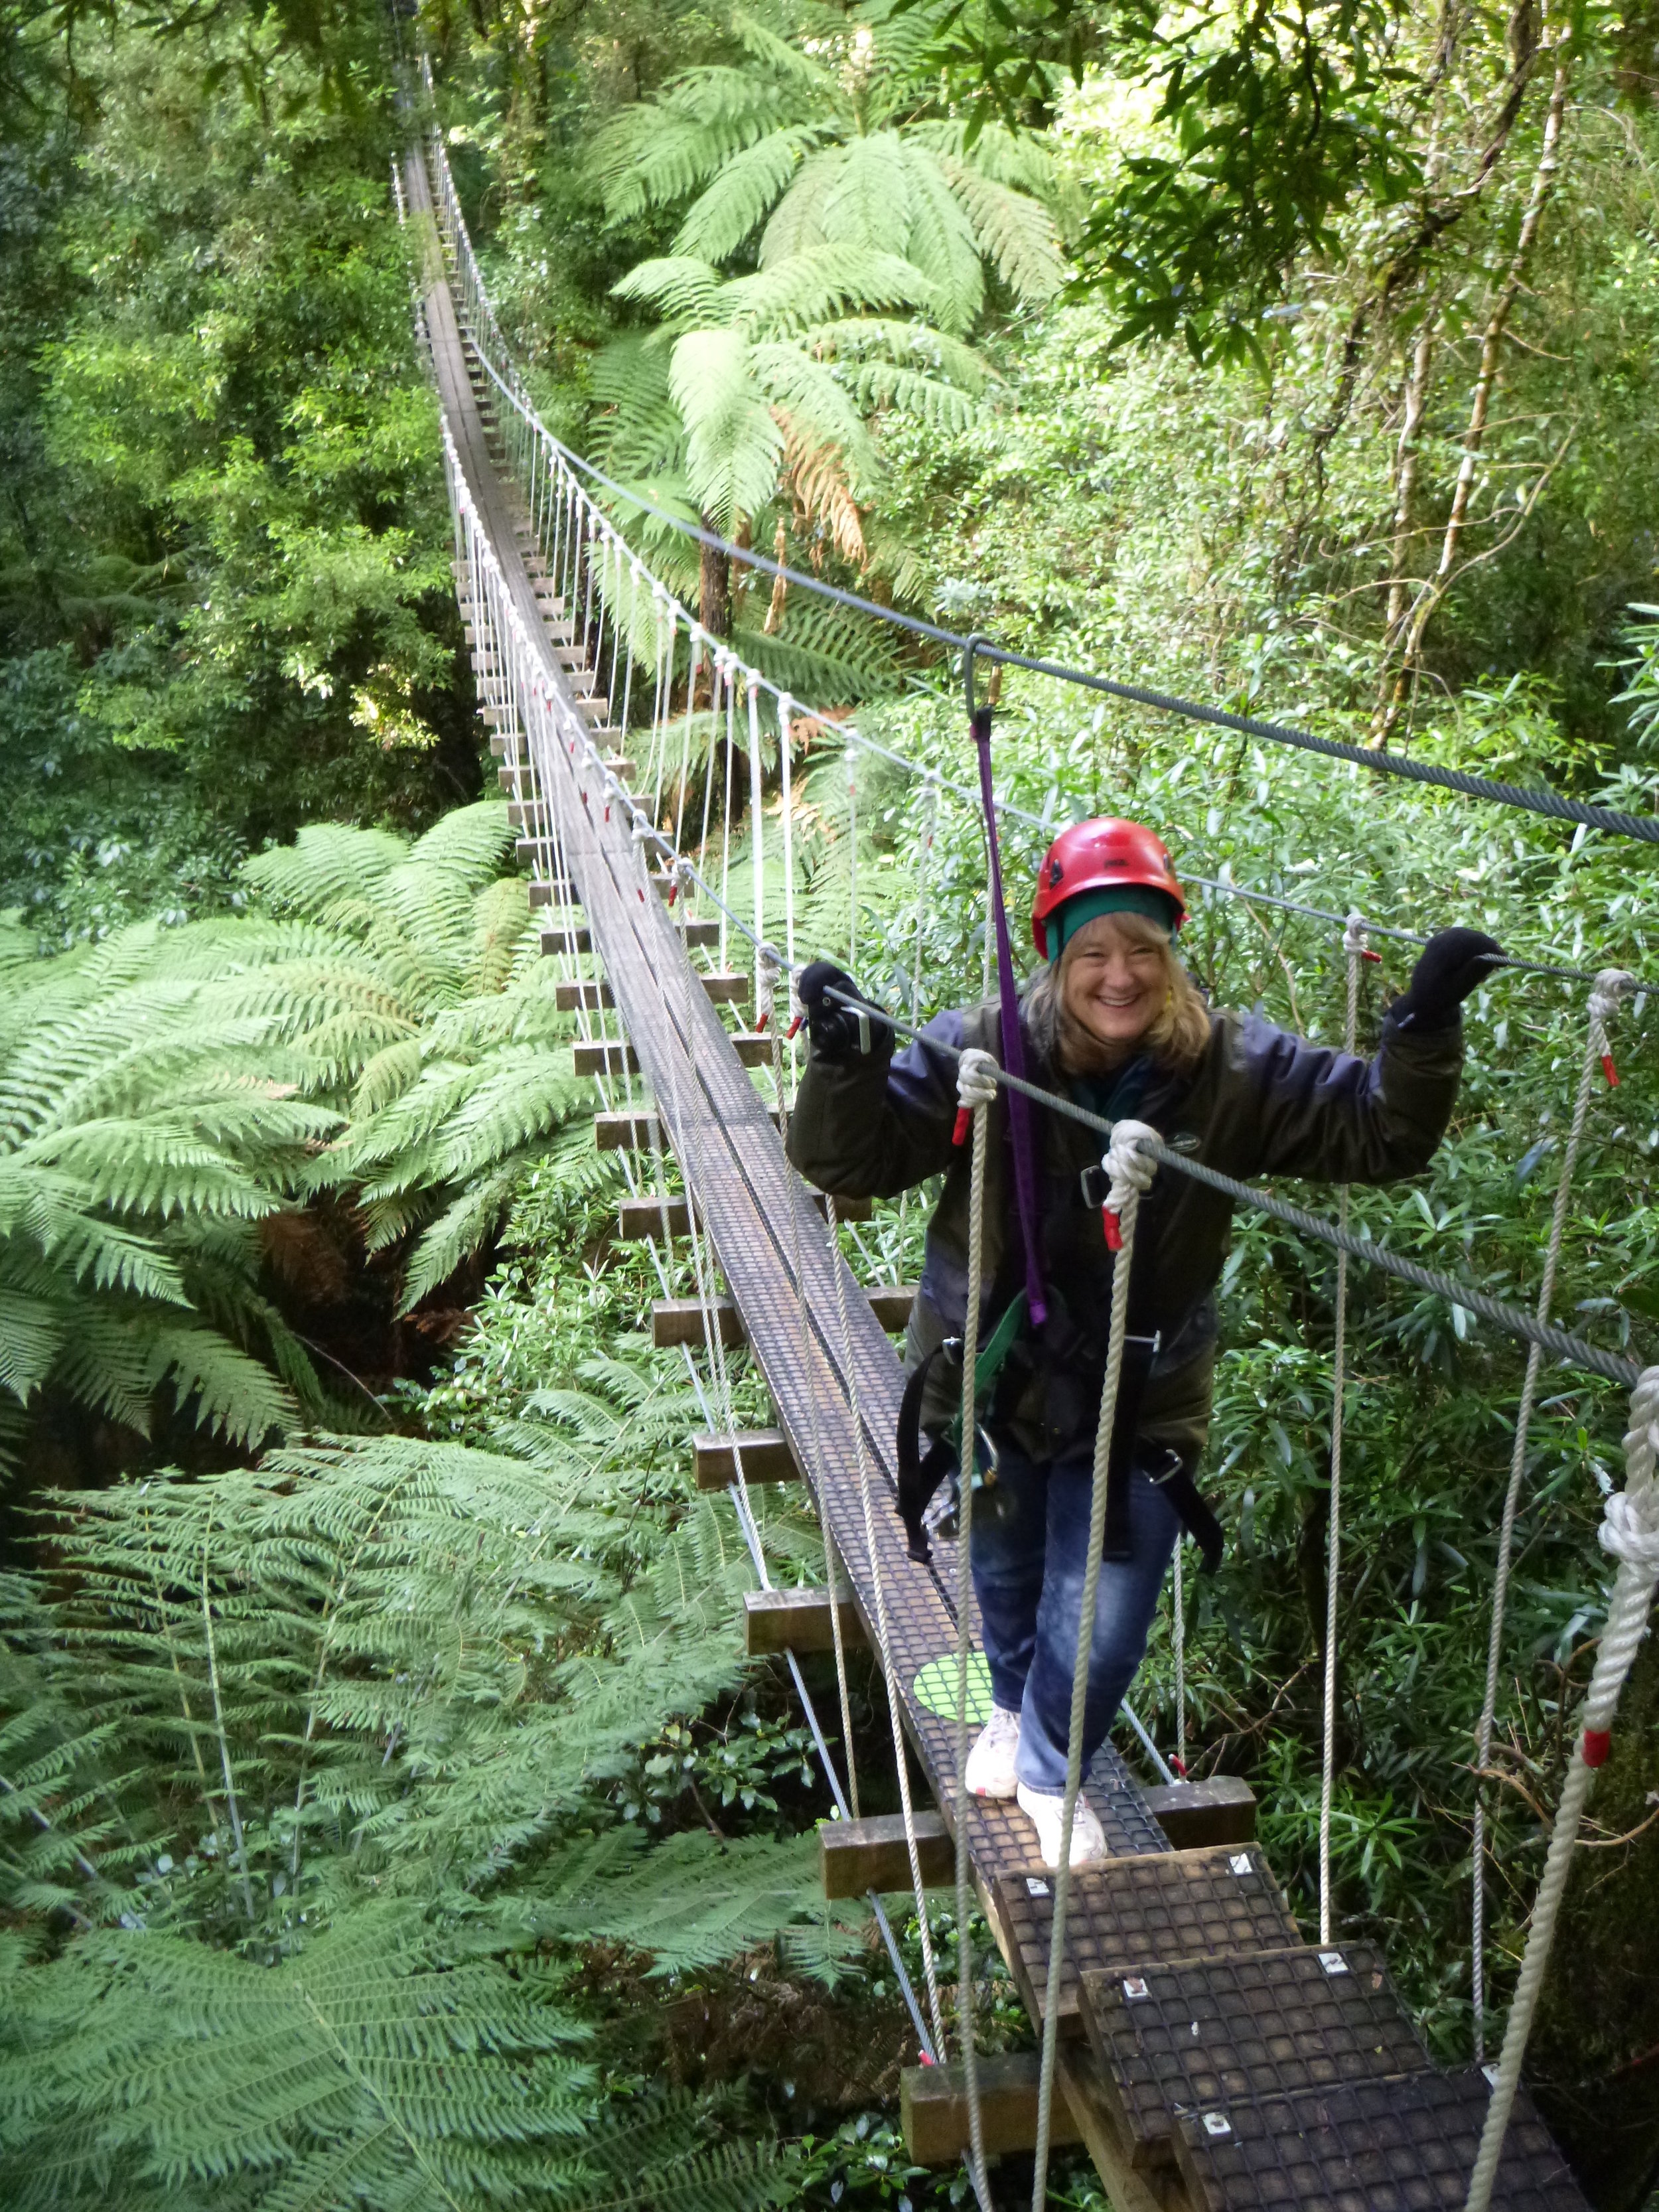 ZIplining through native NZ bush with Canopy Tours, Rotorua (Highly recommended!)